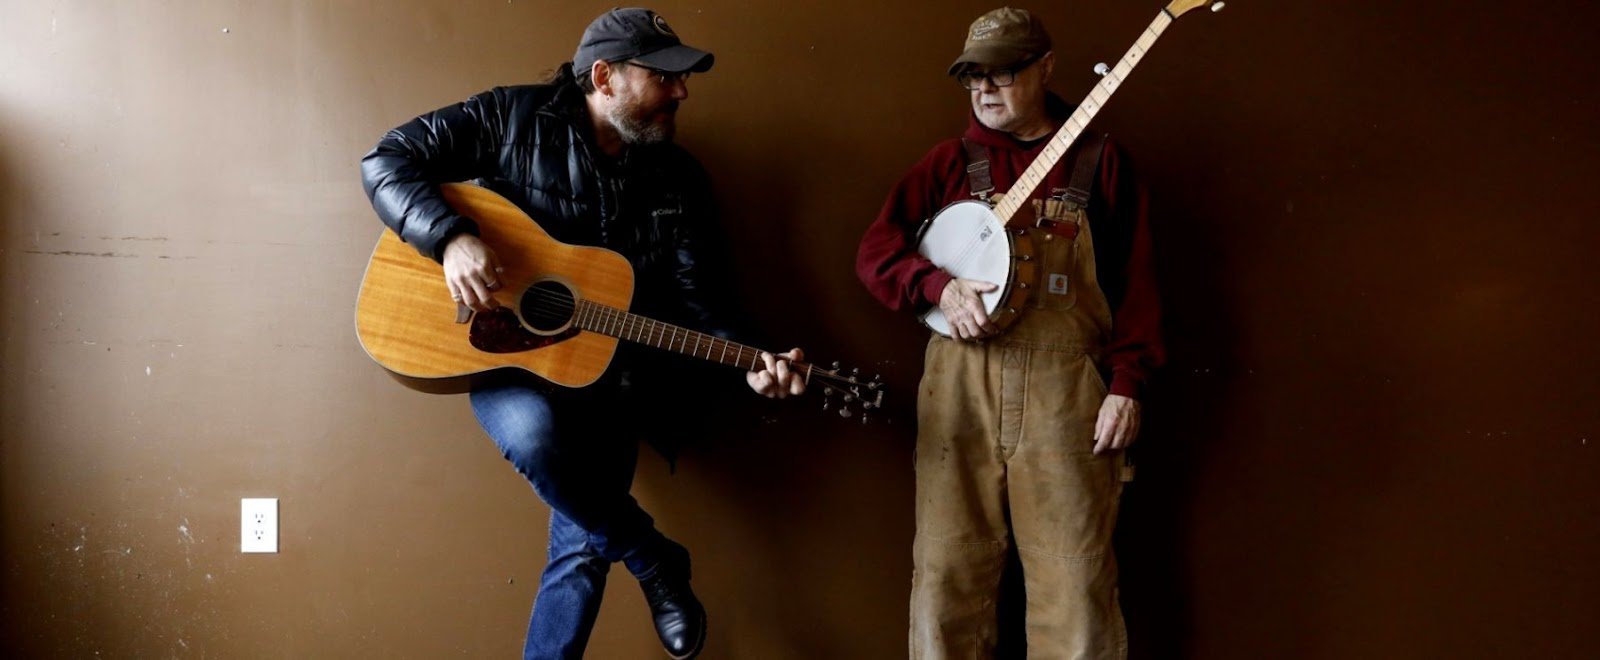 Emerging folk music series in Akron of all places aims to be